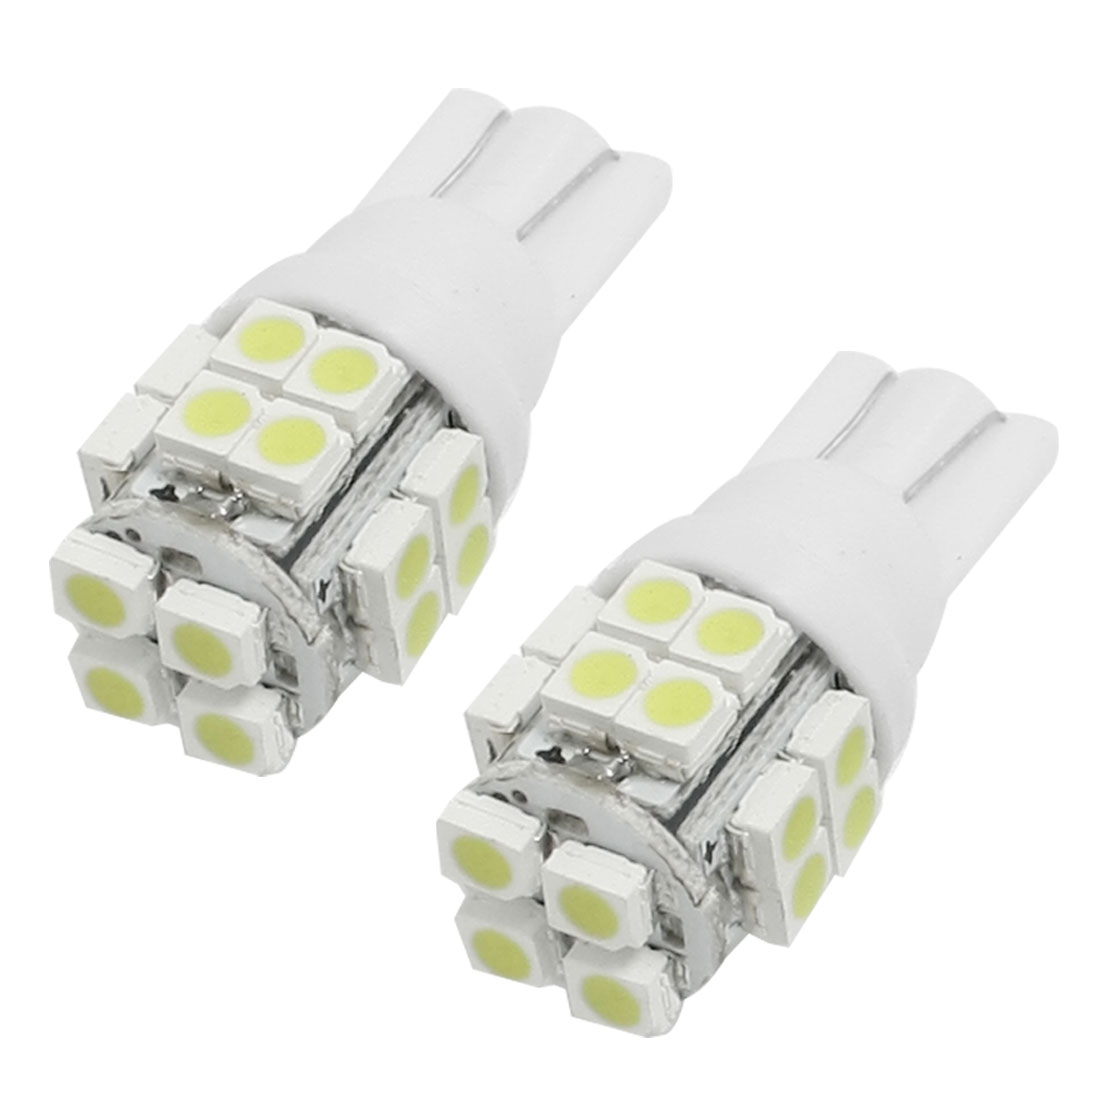 2 Pcs Car Auto T10 White 20-SMD 1210 158 168 194 LED Light Bulb Lamp internal